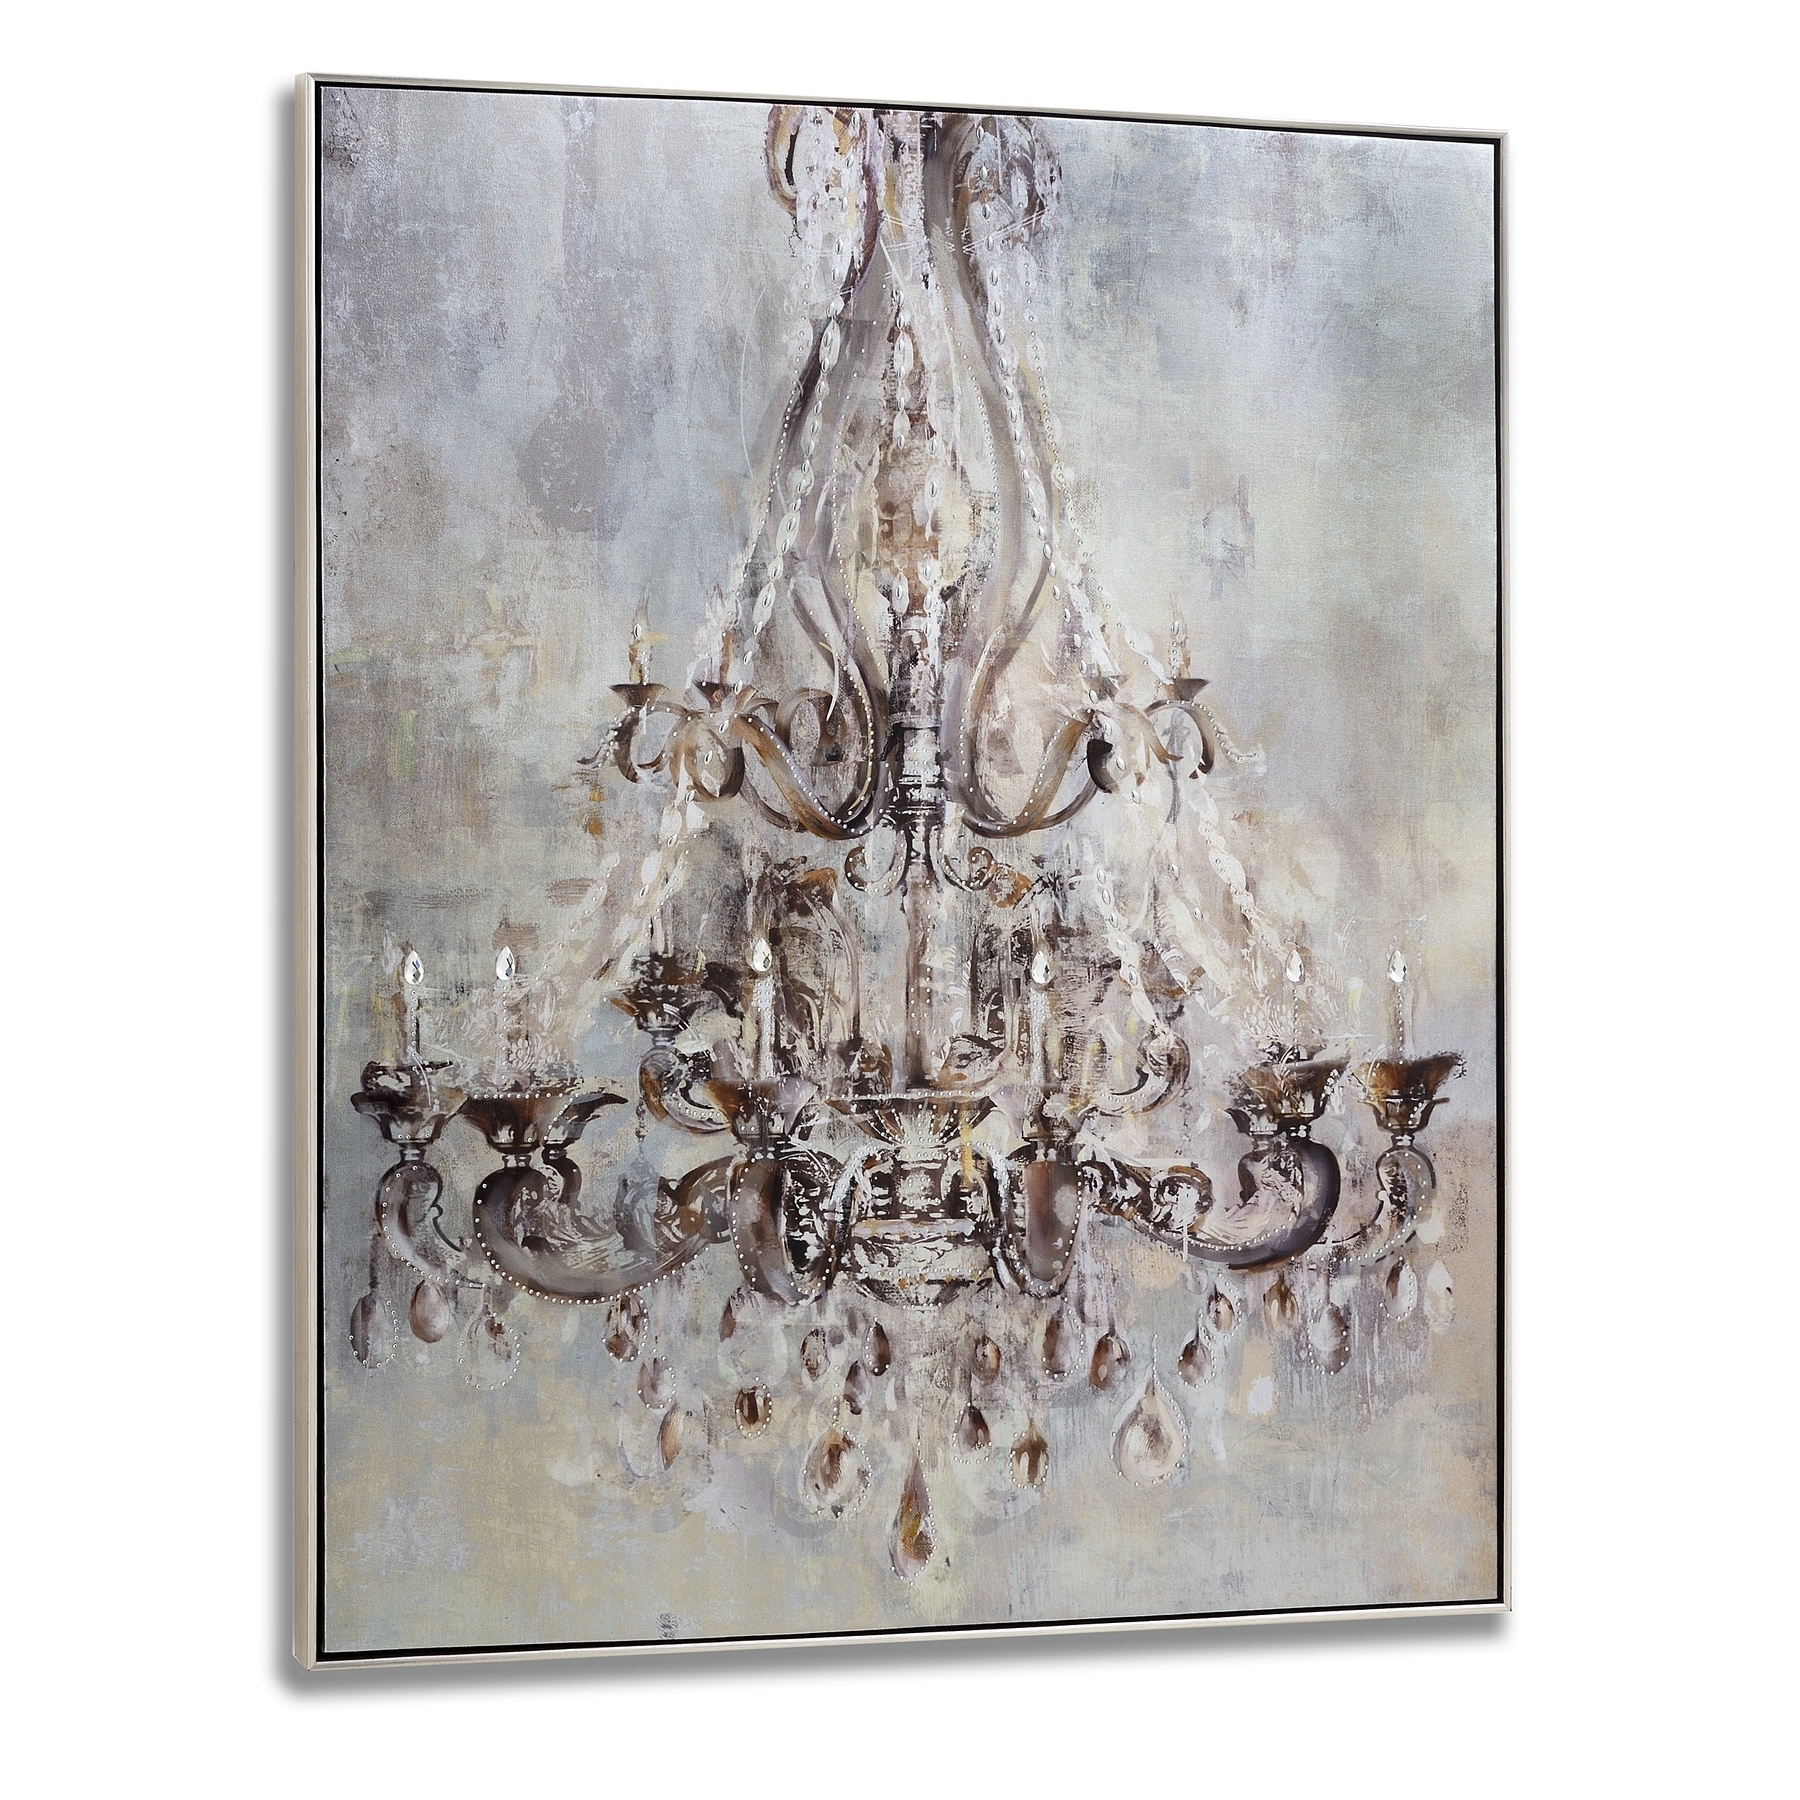 From Baytree In Most Popular Chandelier Wall Art (View 6 of 15)